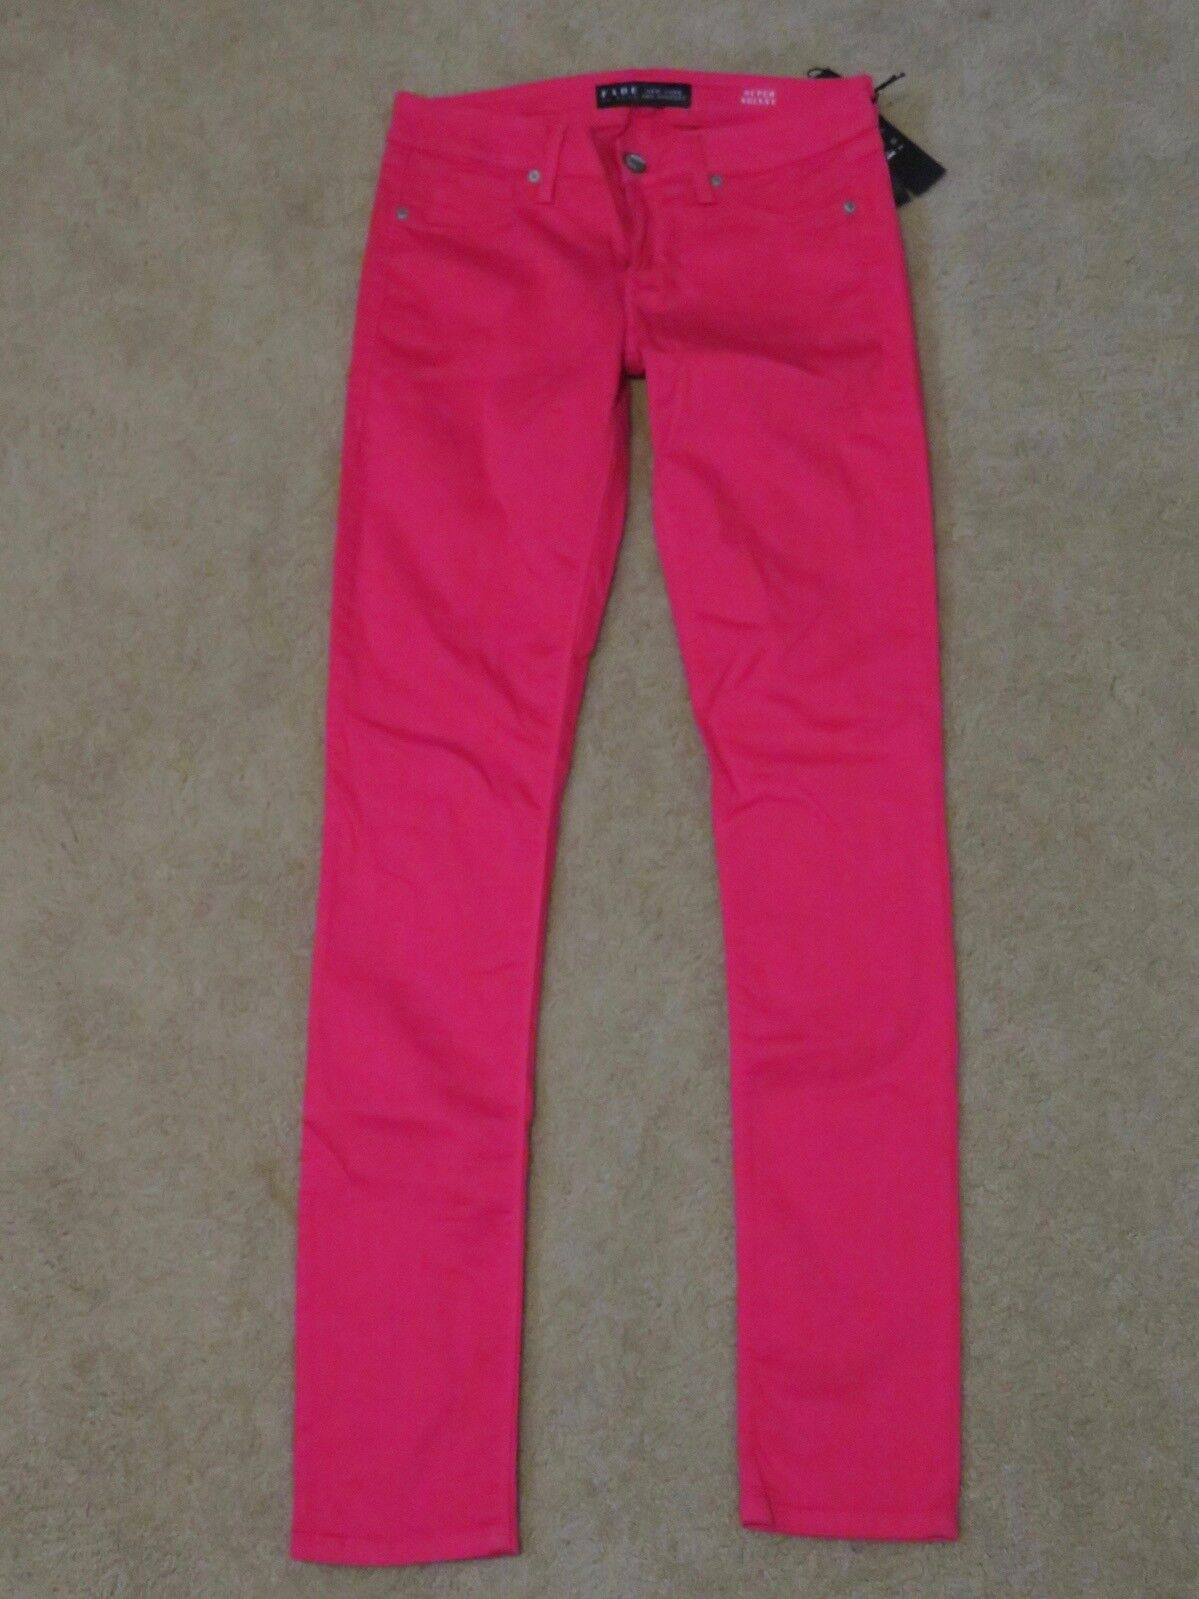 New with Tags NYLA Women's Fade to bluee Super Skinny Red Jeans Pants Size 27